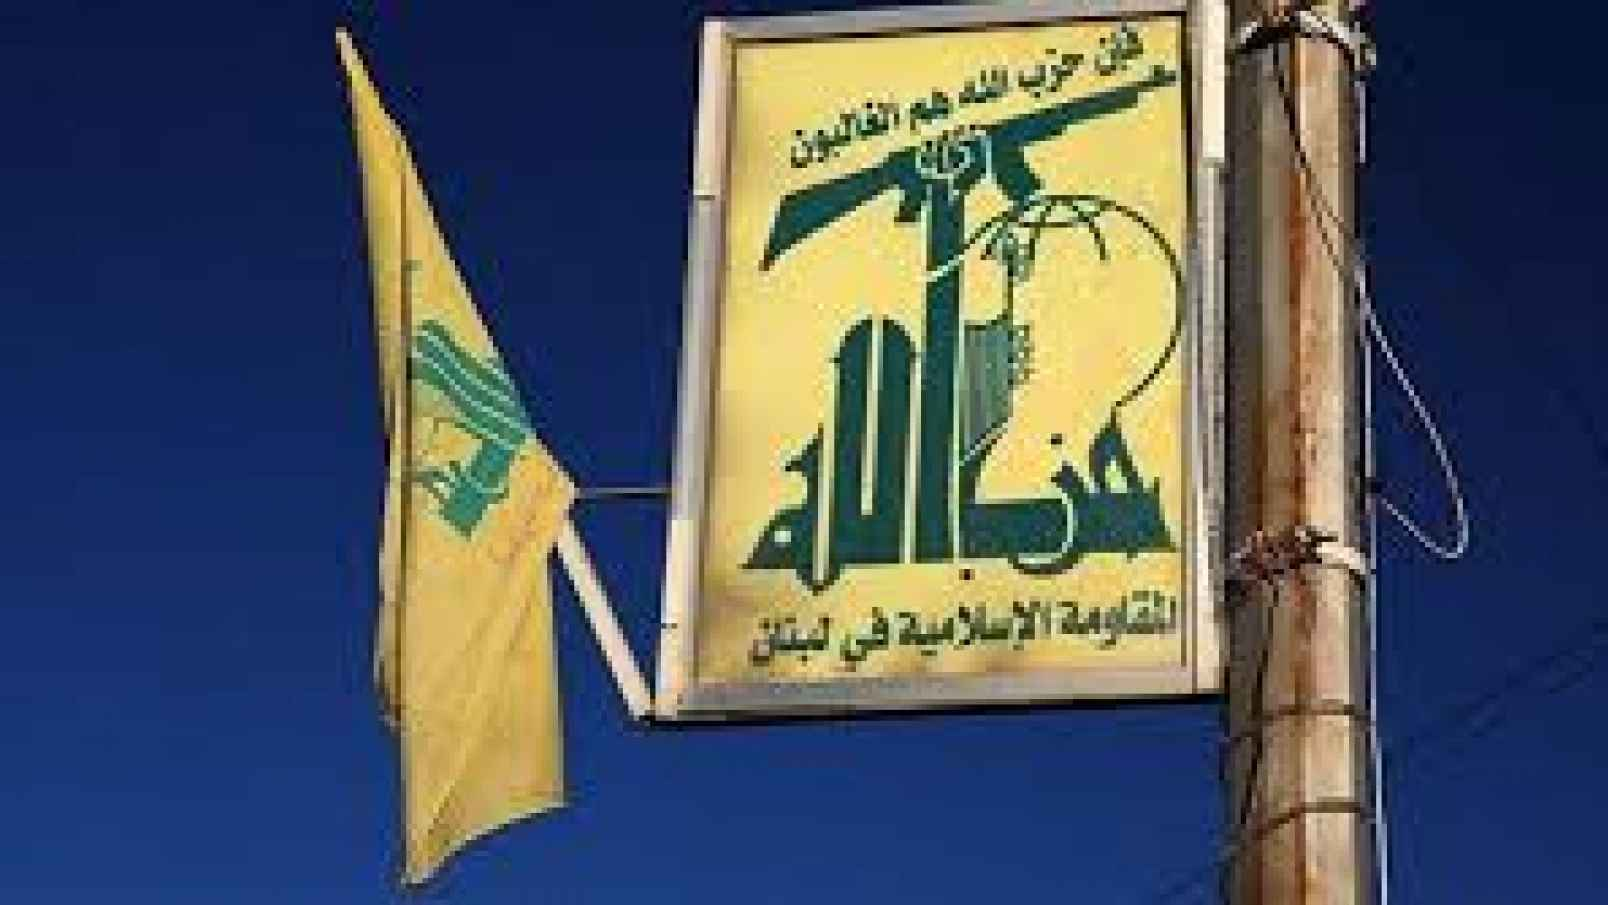 """""""Alleged Hezbollah """"Sleeper"""" Arrested In NYC By Joint Terrorism Task Force: He's a naturalized U.S. citizen — admitted lawfully nearly 20 years ago."""""""